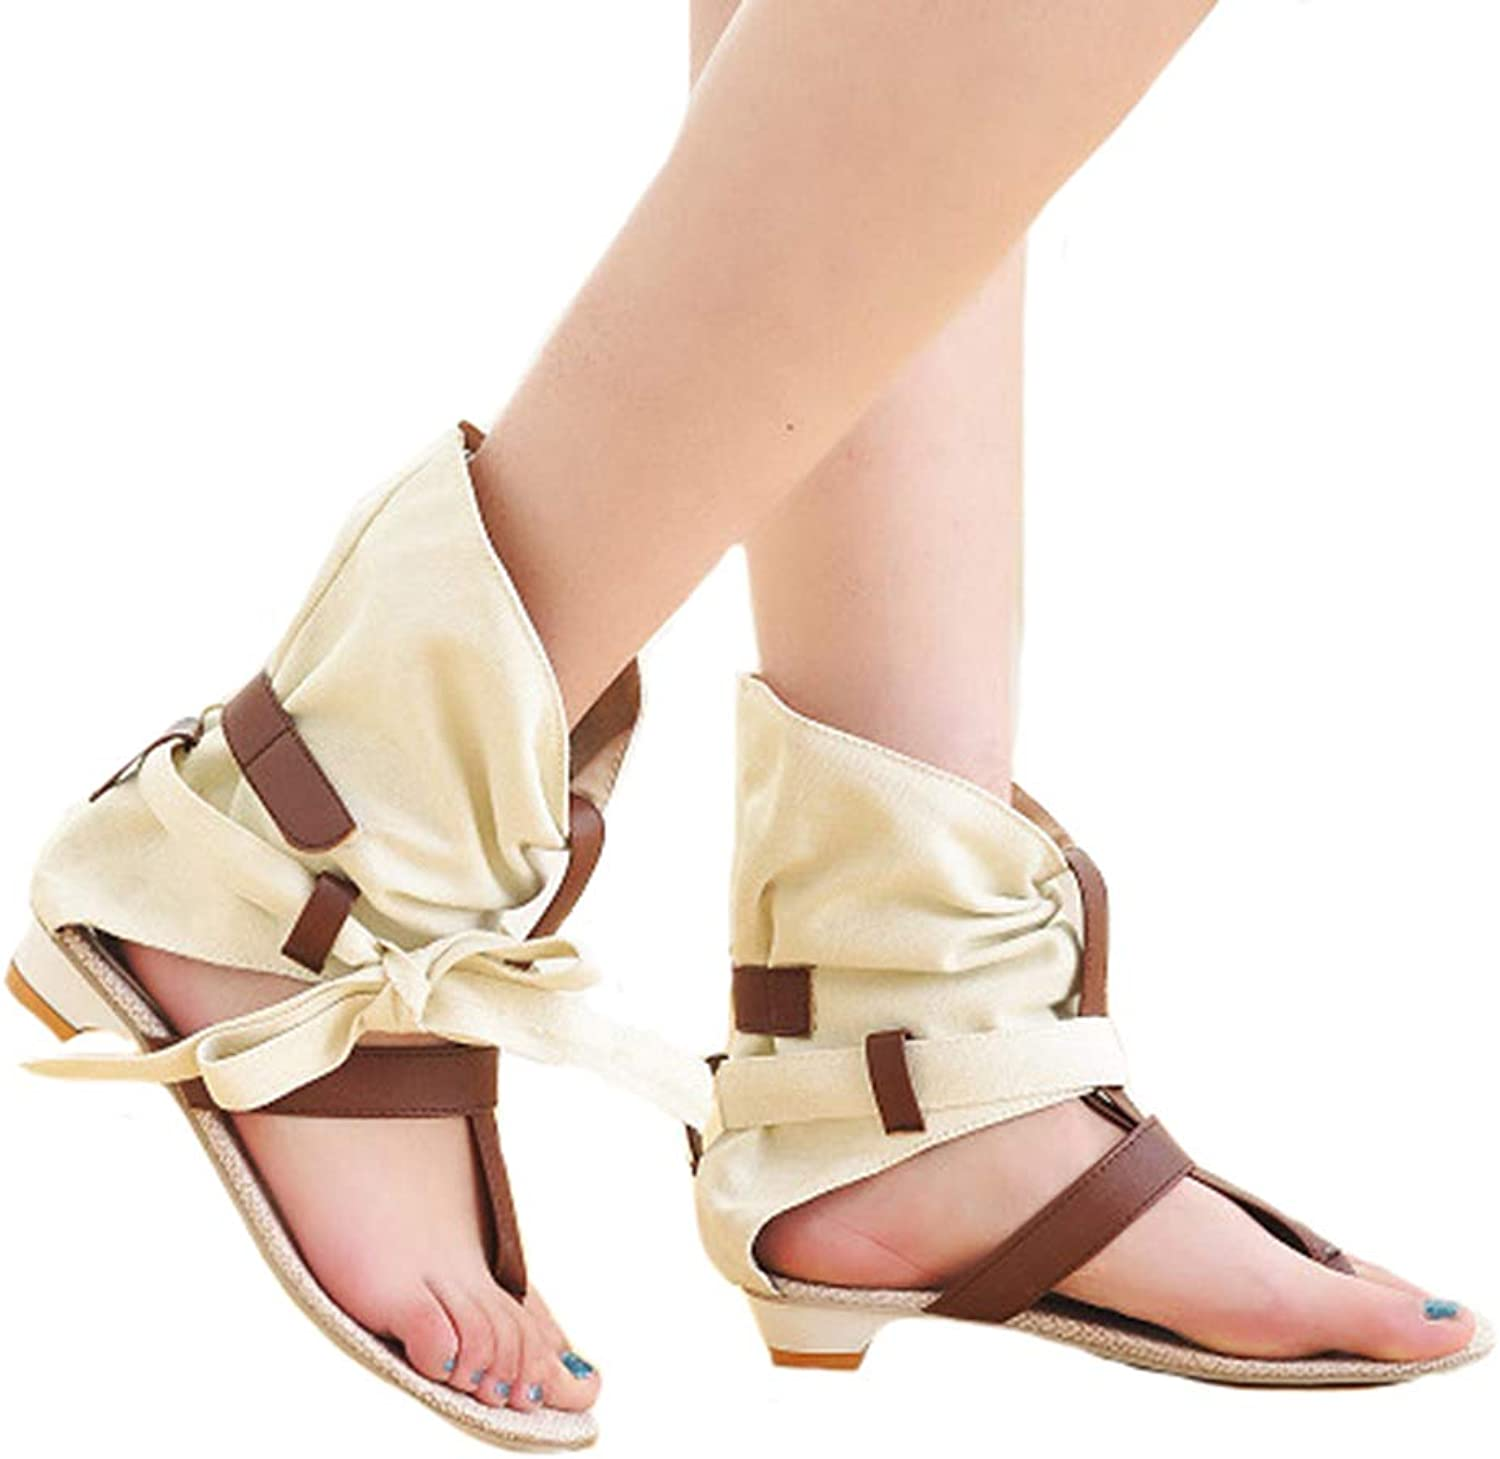 Women Rome Sandals Flax Hollow Low-Heeled Sandal Comfy Buckle Breathable shoes,White,40